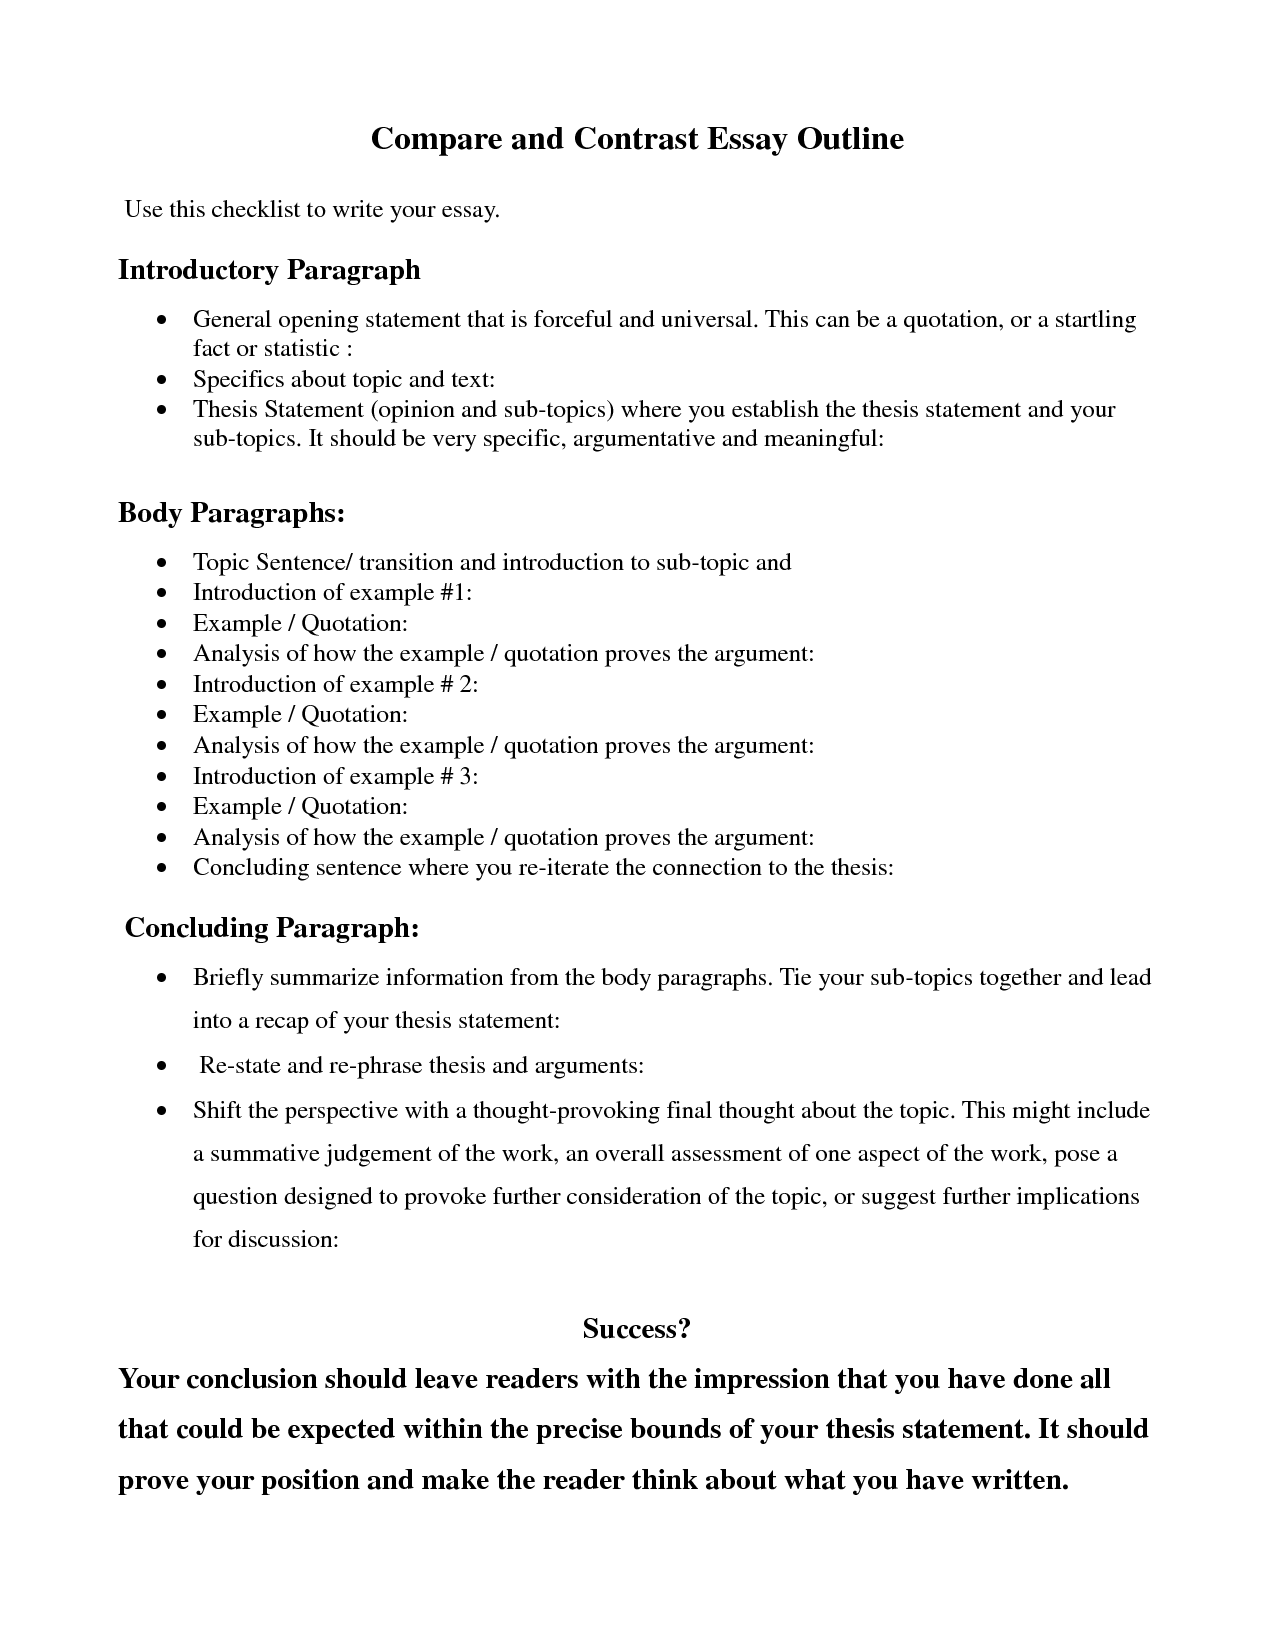 006 Comparison And Contrast Essays Point By Imposing Essay Examples Point-by-point Full